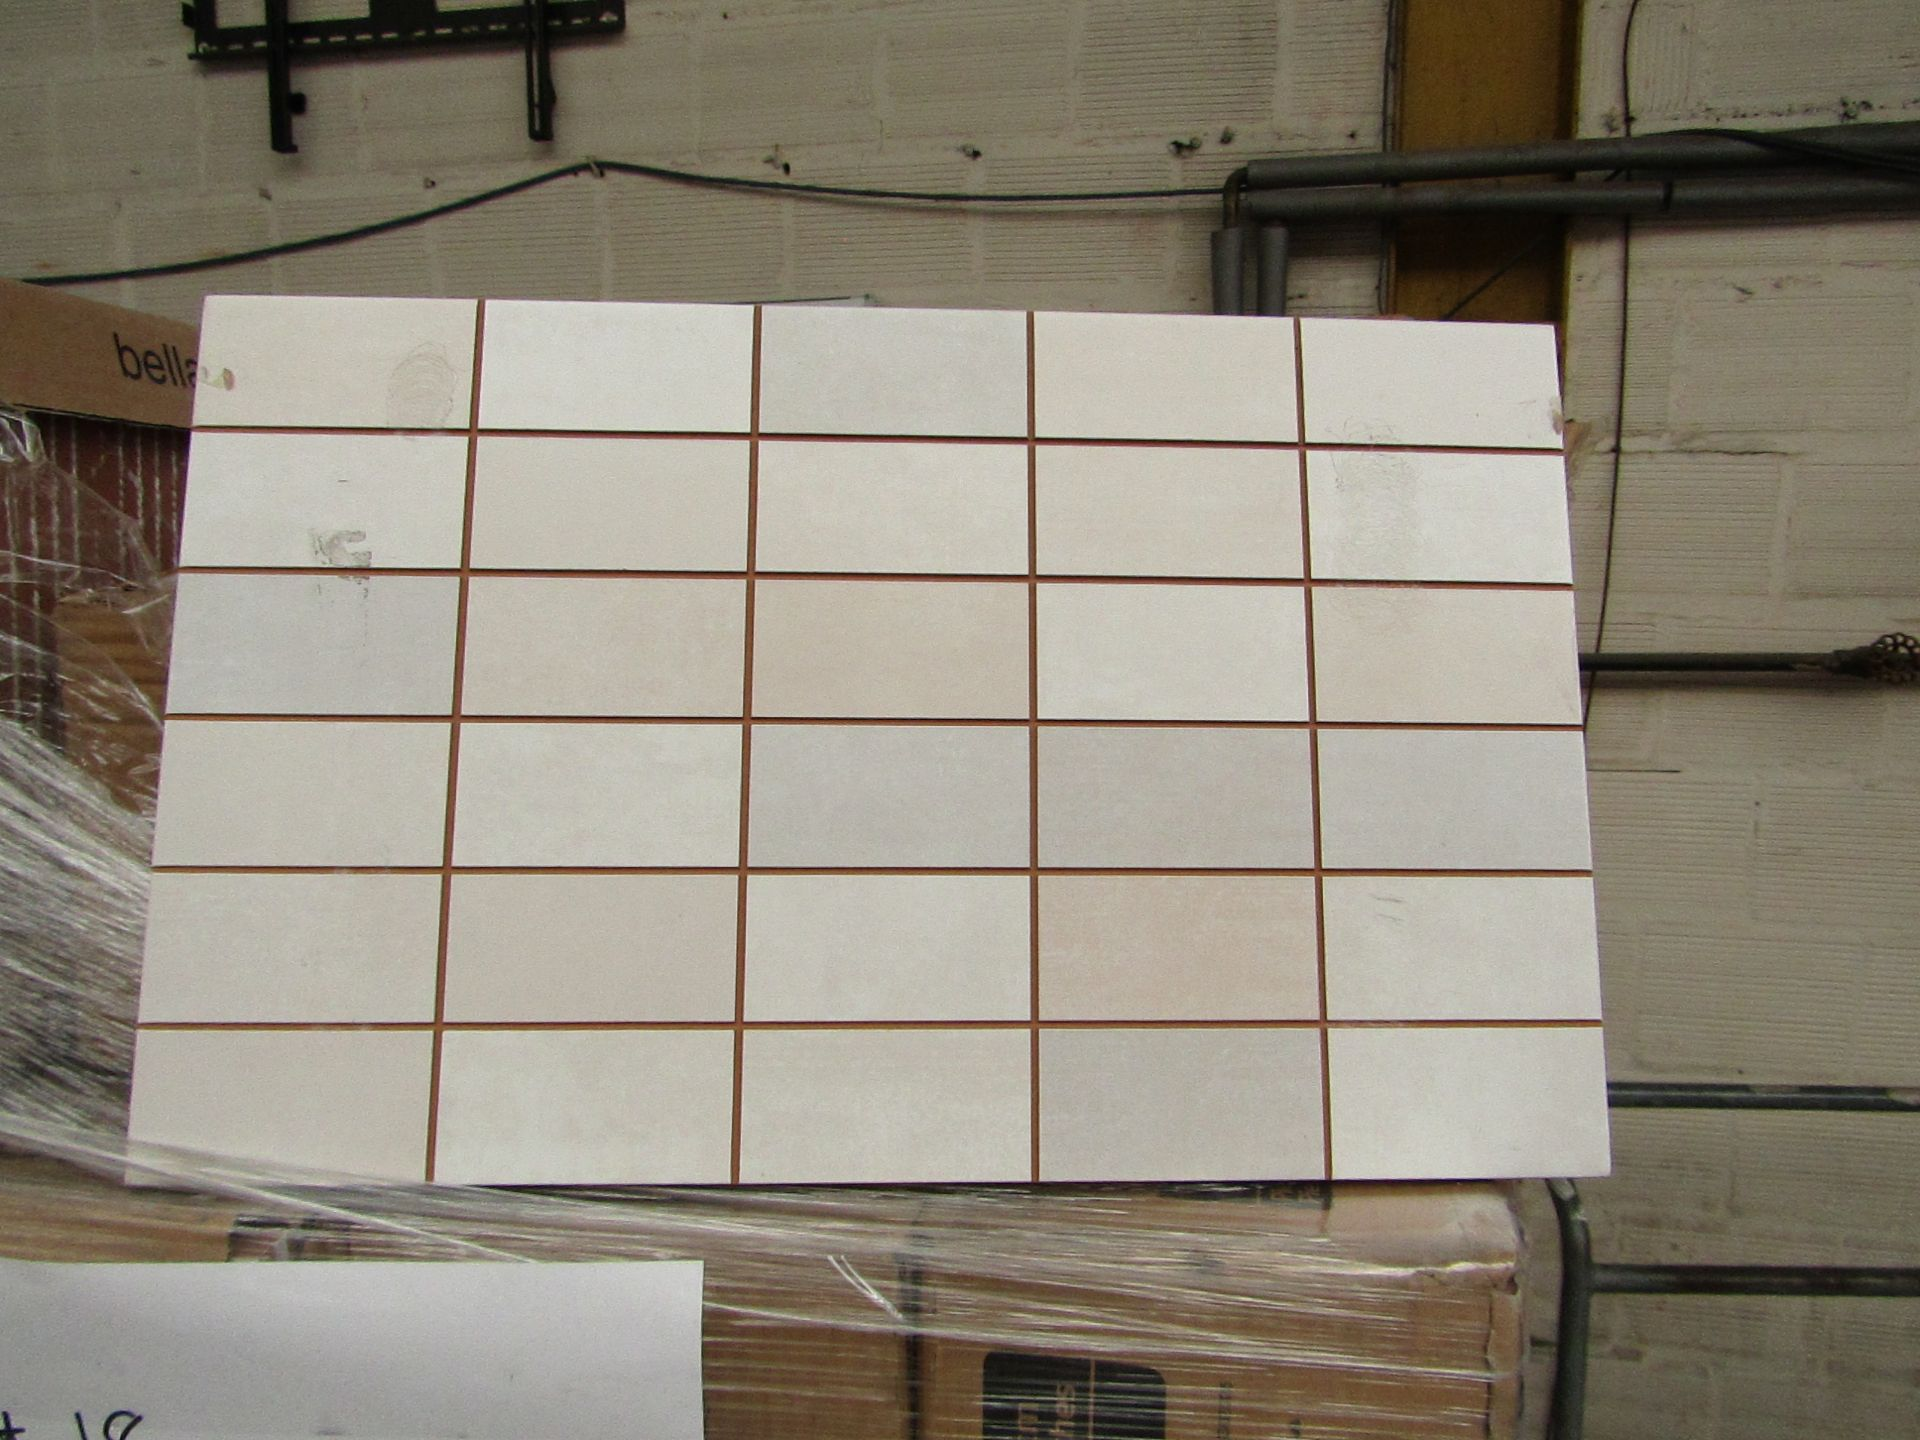 Lotto 392 - 10x packs of 17 Bella Vista Freya Cream mosaic tiles 400x250, RRP £16.66 giving a total lot RRP of